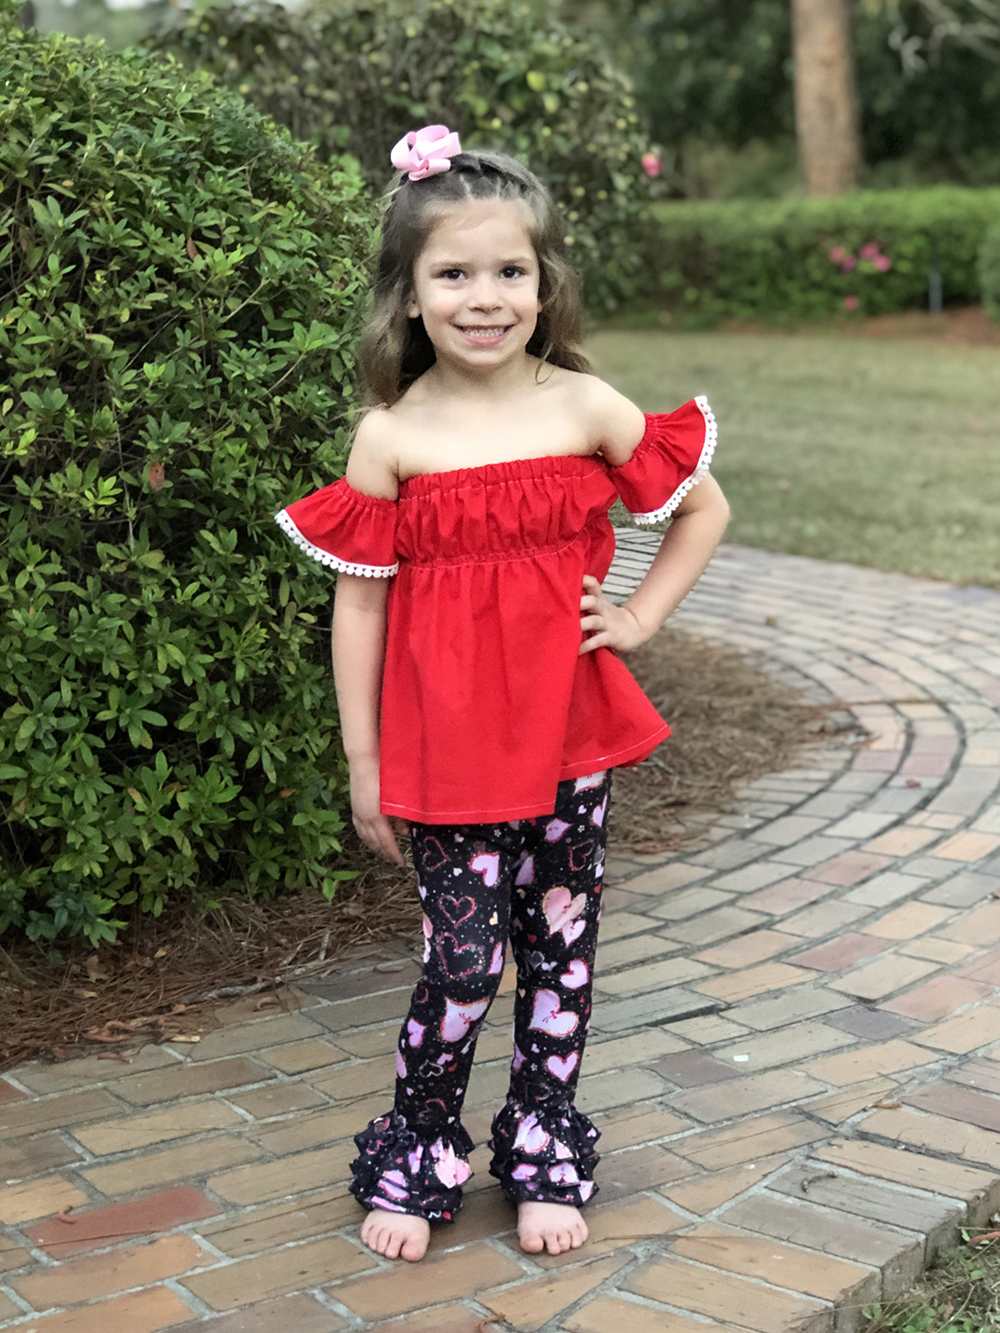 Fleur's Crop Top, Shirt, and Dress Sizes NB to 14 Kids PDF Pattern